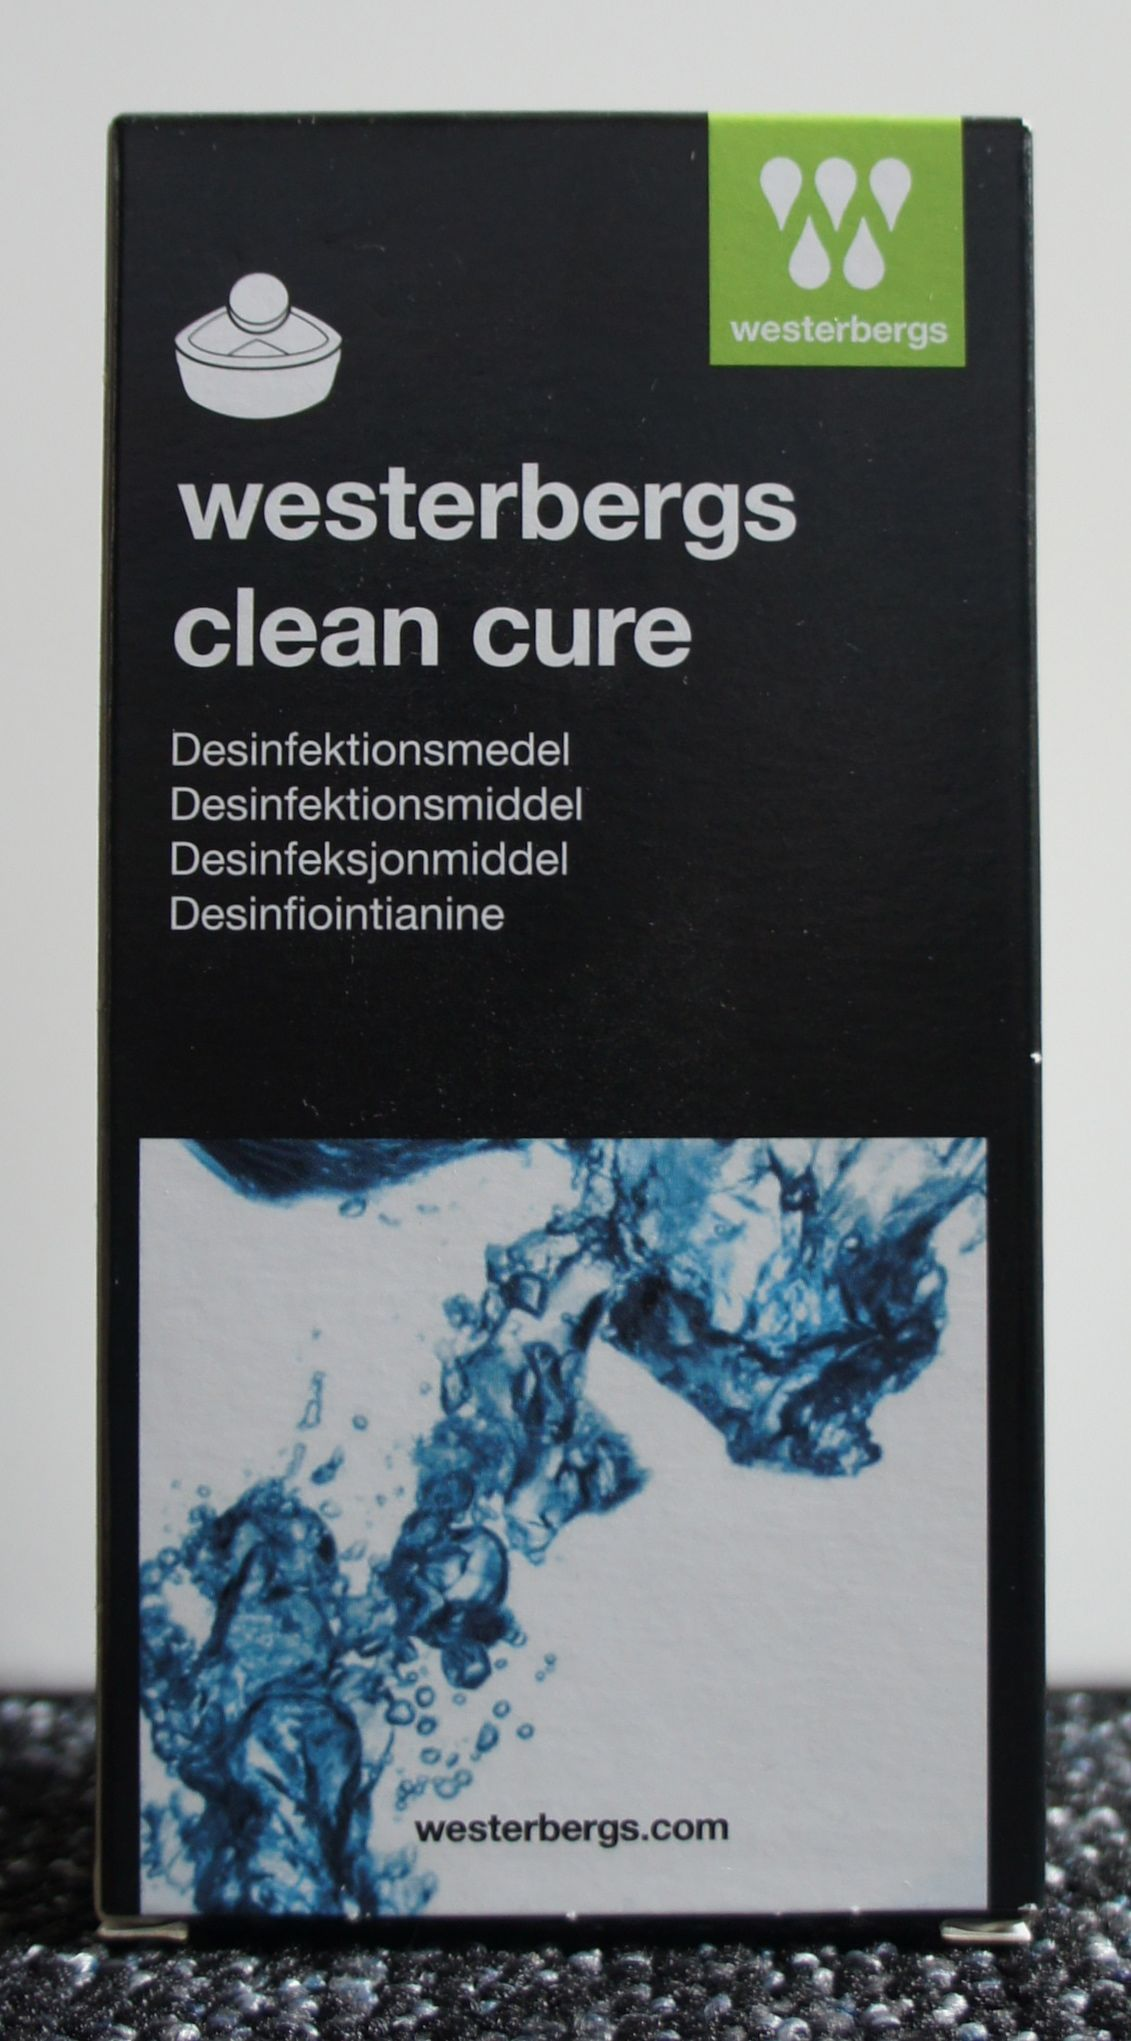 Clean cure